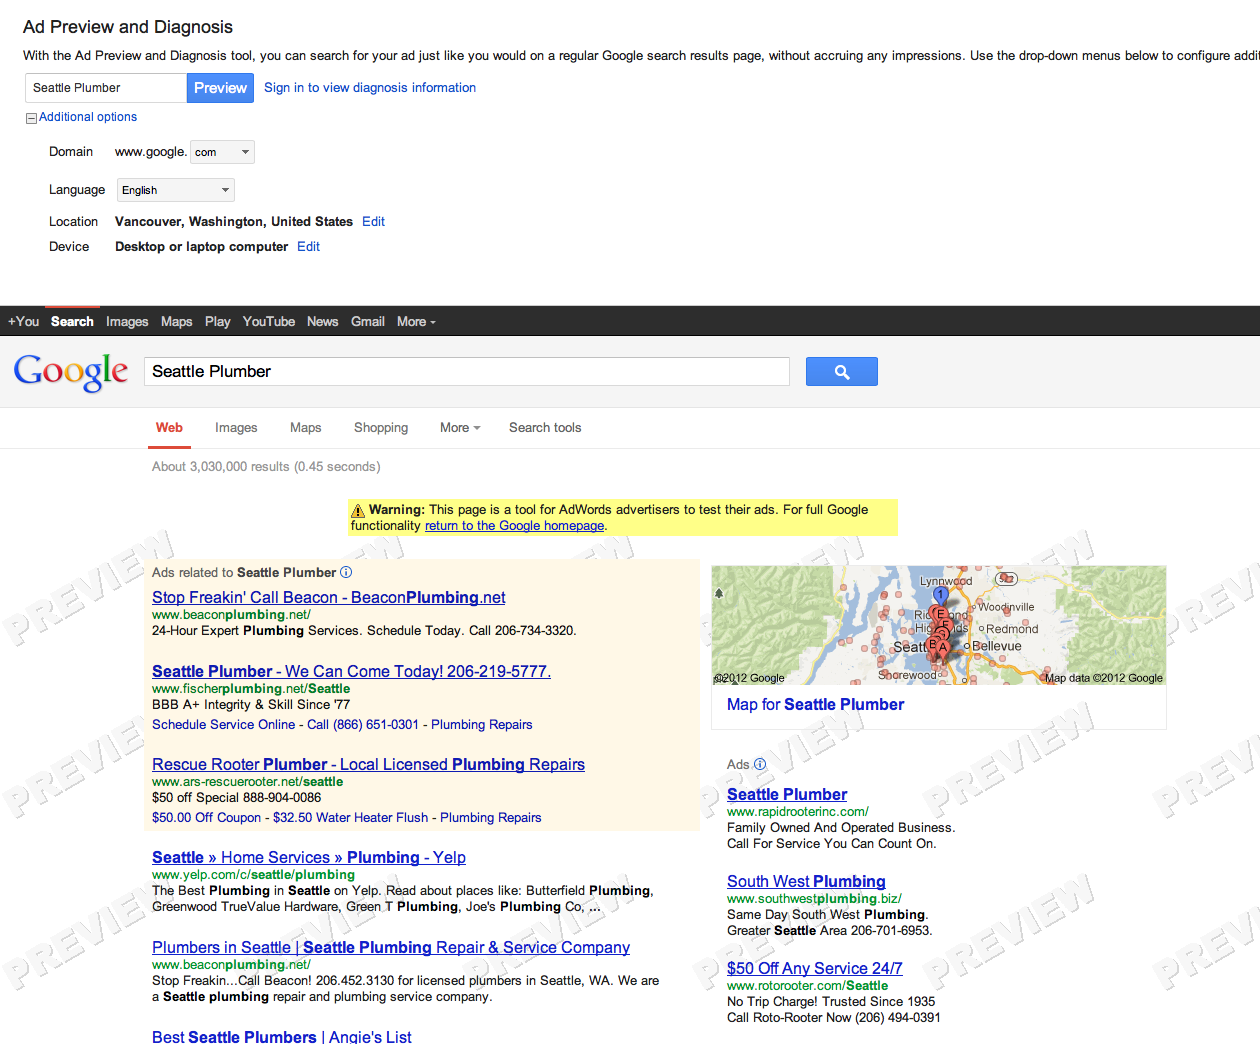 Update - Google AdWords Ad Preview Tool Not Working In